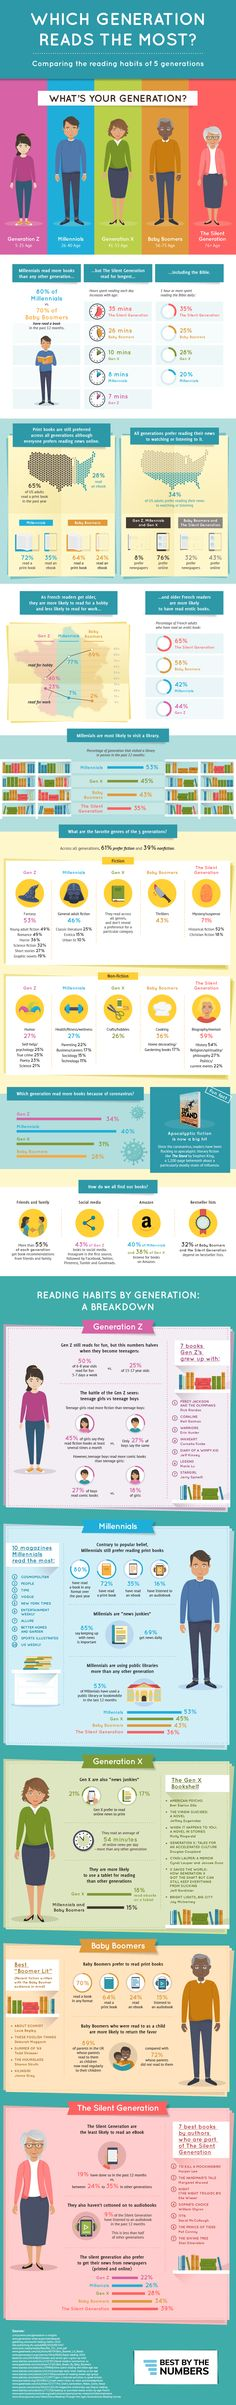 The Reading Habits Of Five Generations [Infographic] | BookBaby Blog